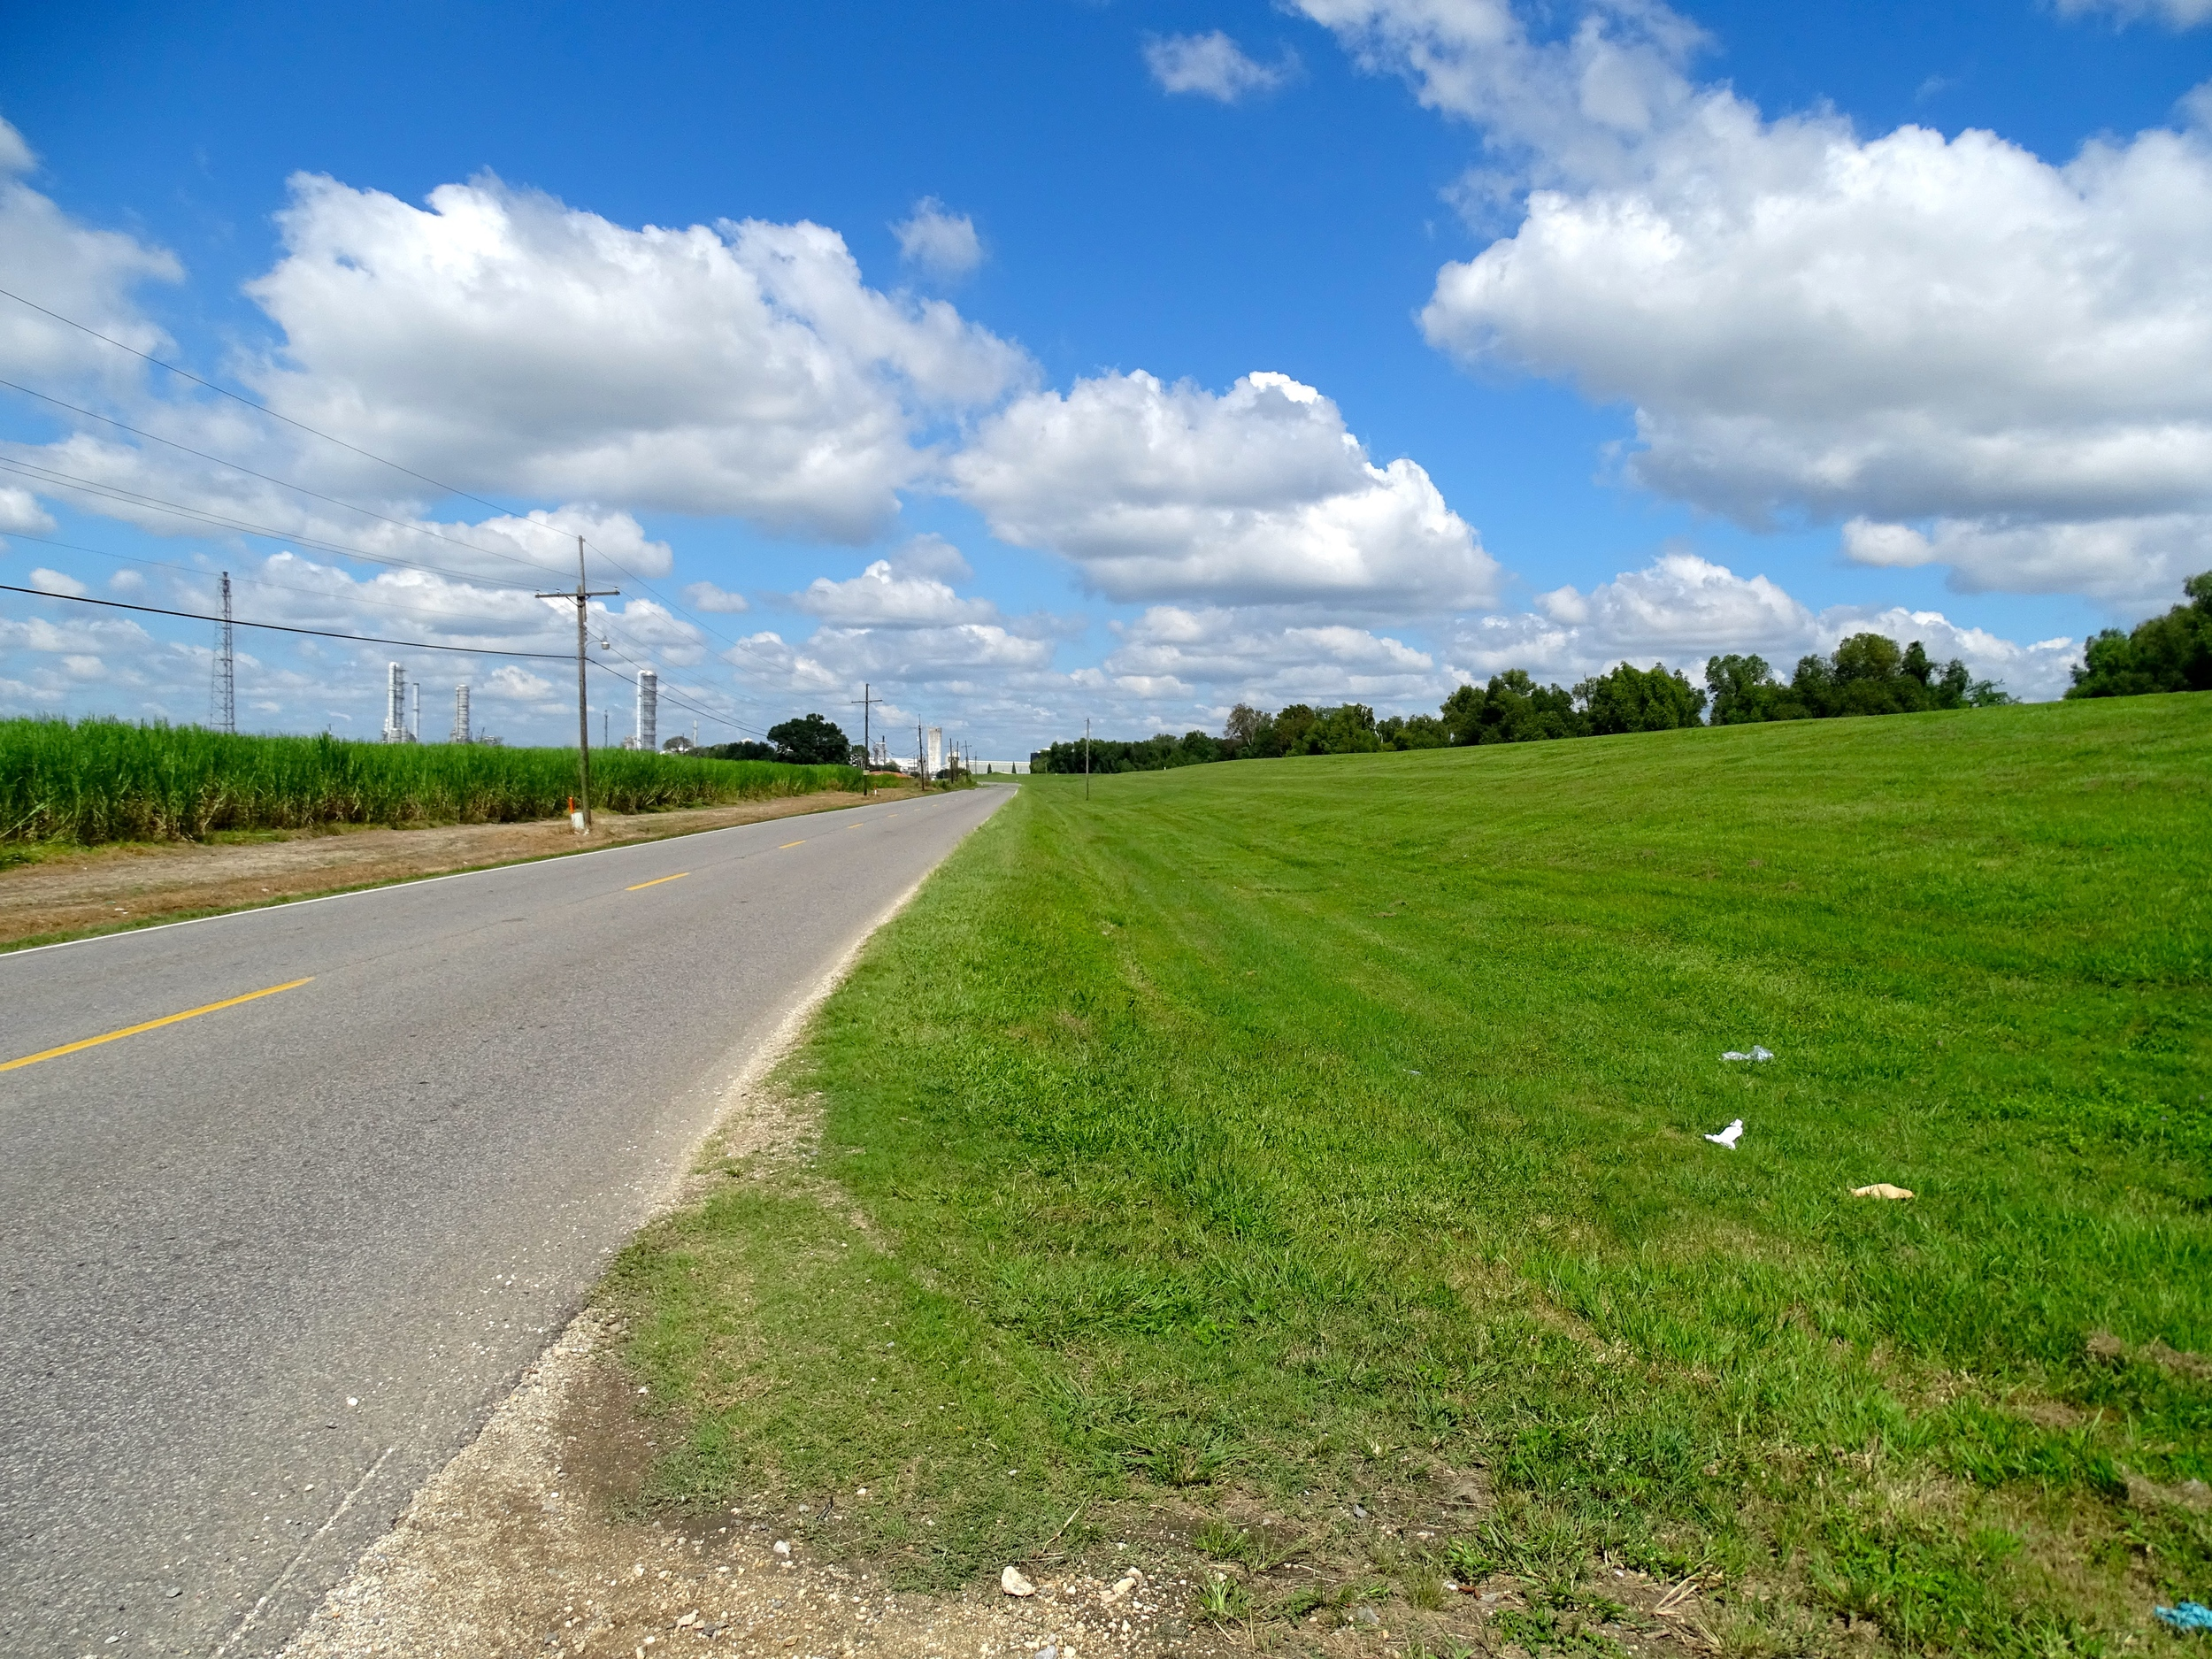 Little Roads Following the Levee on the Mississippi River